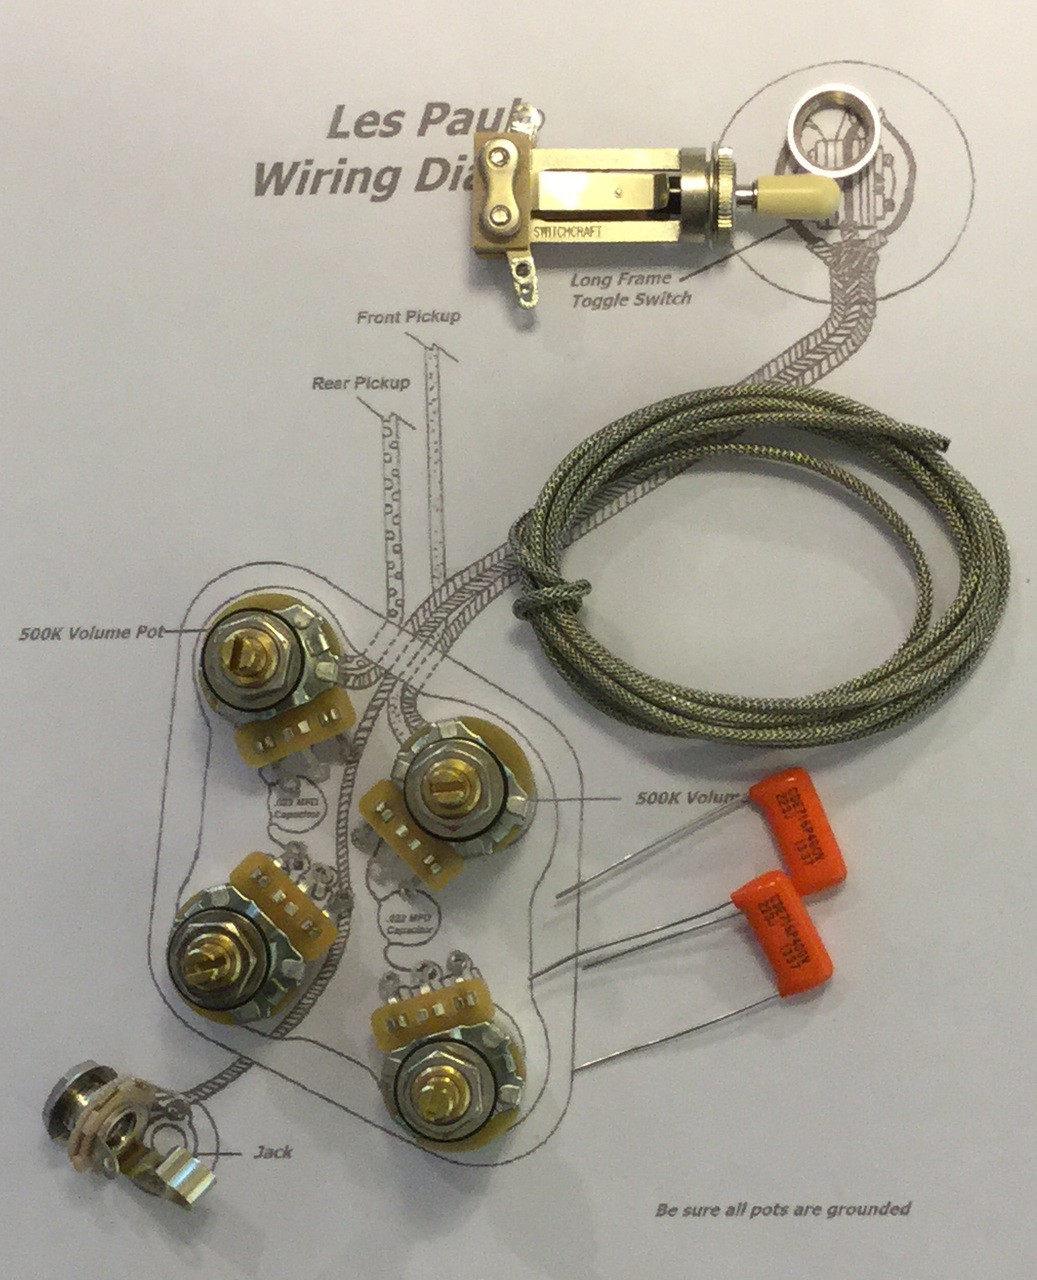 Jack Les Paul Wiring Library Pot On Tribute Harness Pots Switch Taot Kit Gibson Long Shaft Cts 450g